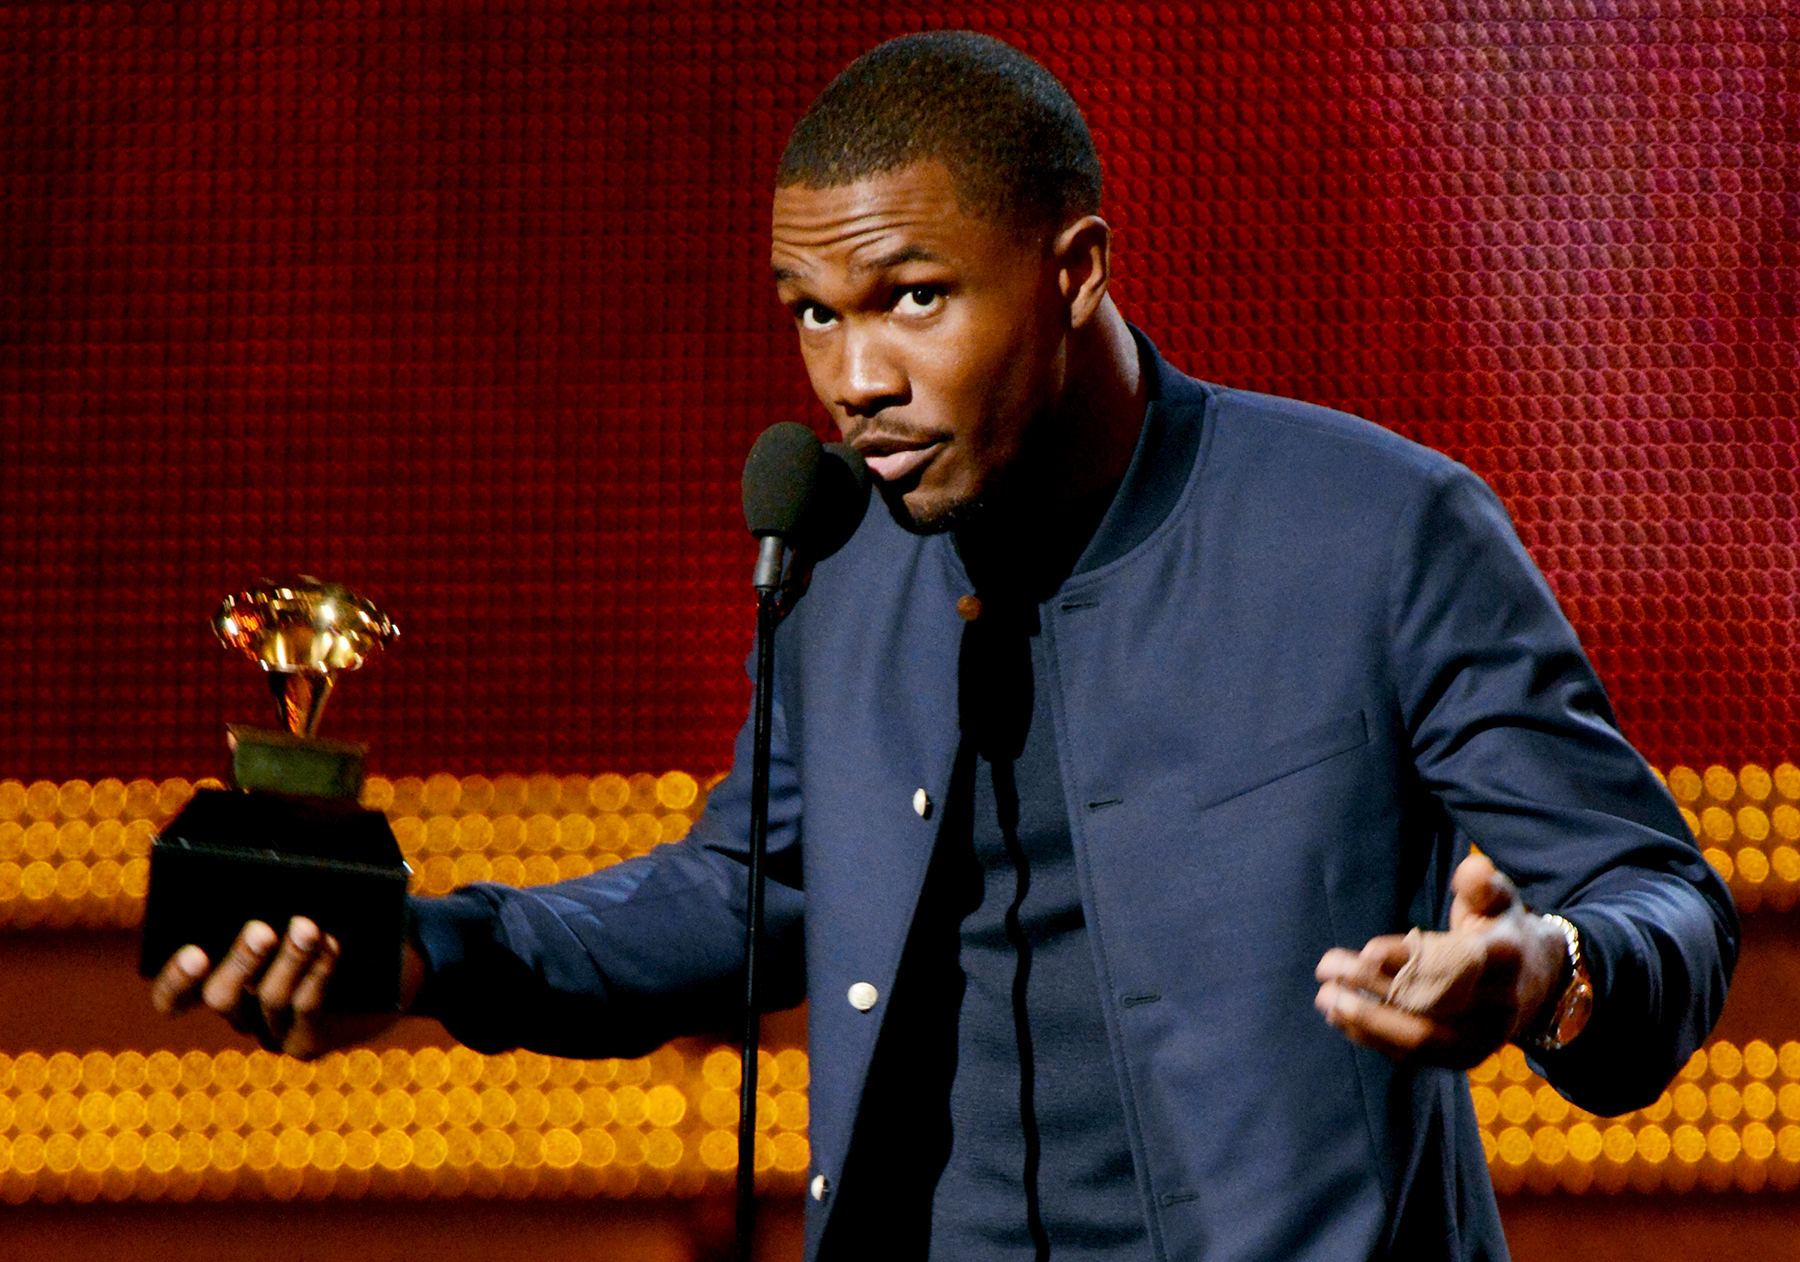 Frank Ocean accepts an award onstage at the 55th Annual GRAMMY Awards at Staples Center on February 10, 2013 in Los Angeles, California.